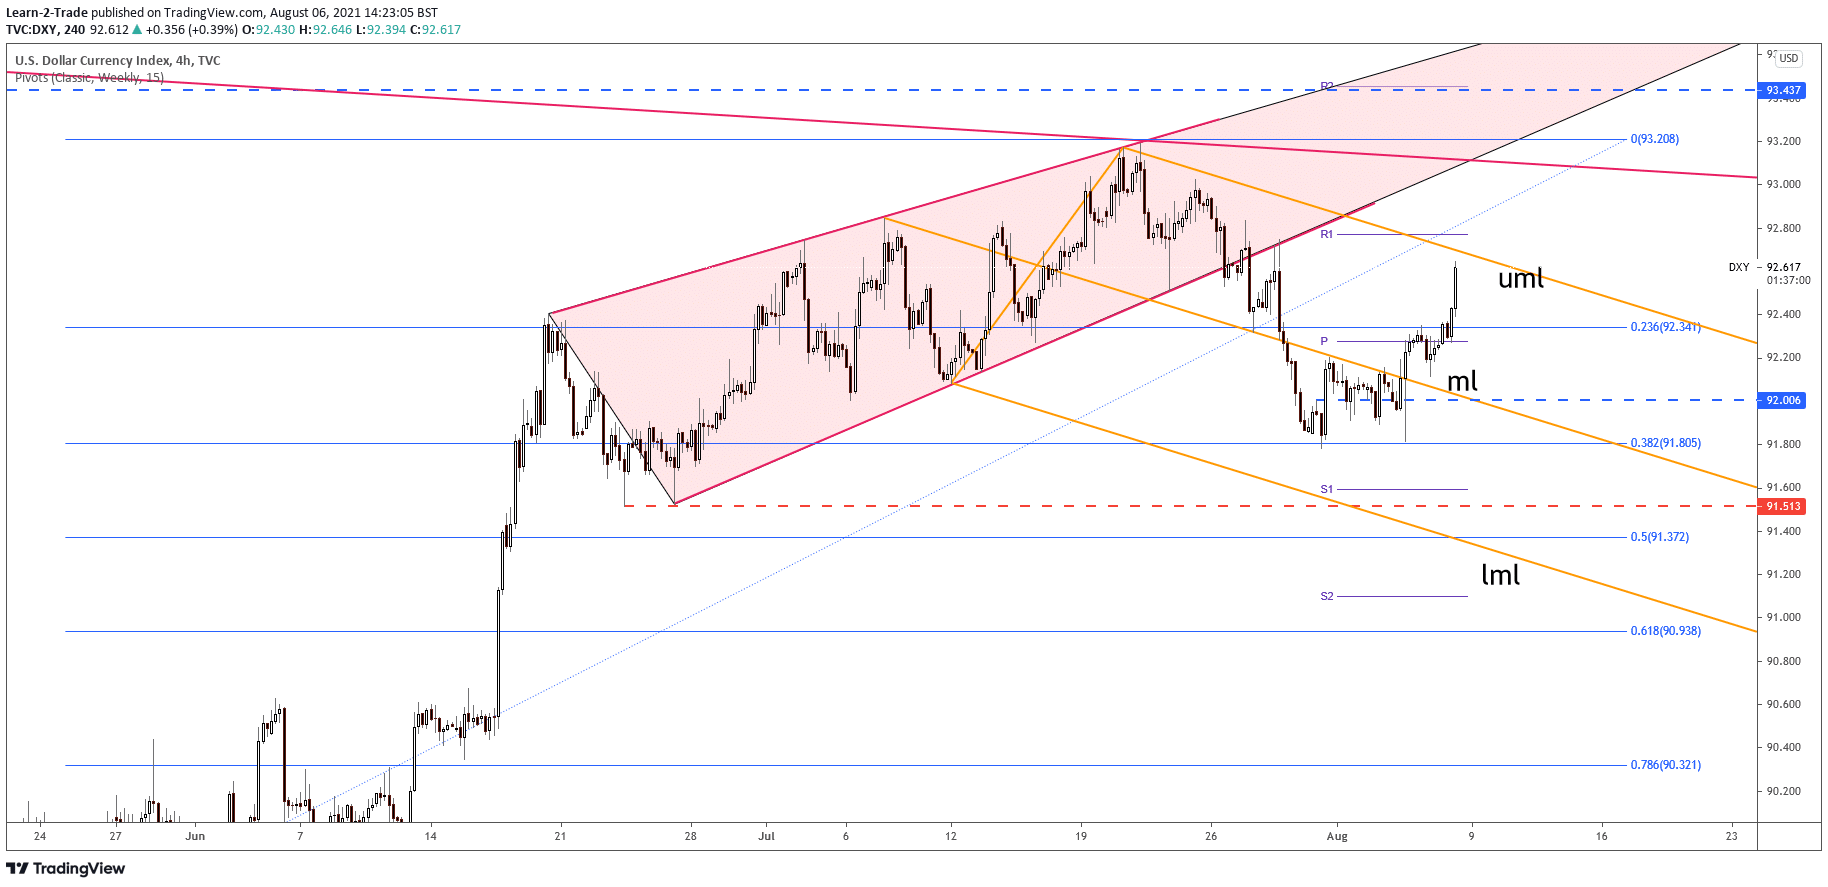 DXY 4-hour price chart